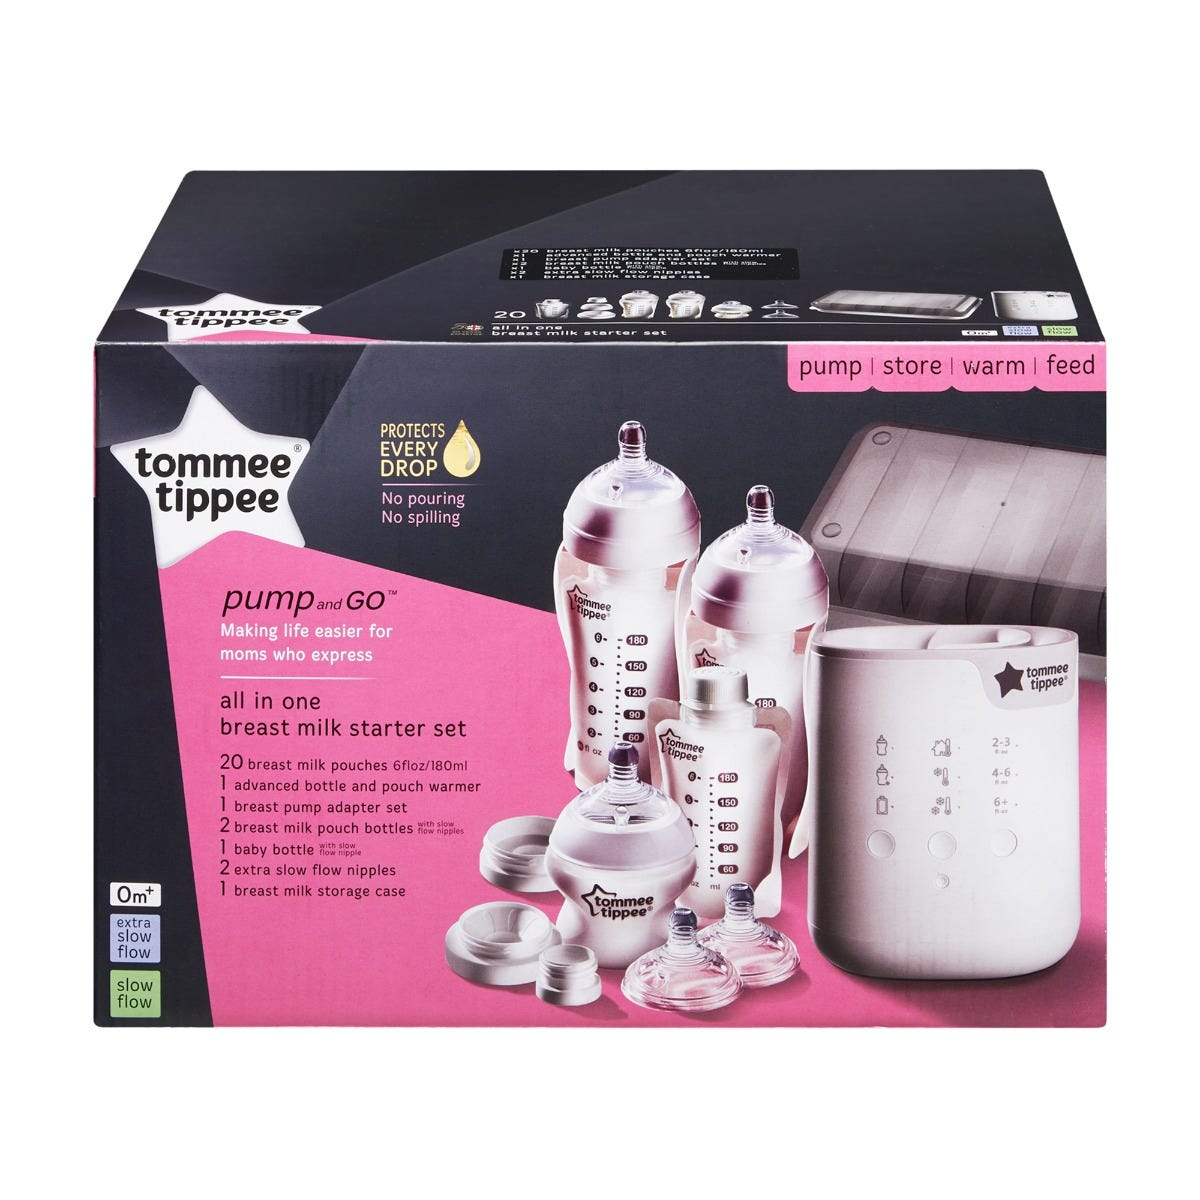 pump-and-go-all-in-one-set-packaging-pump-store-warm-feed